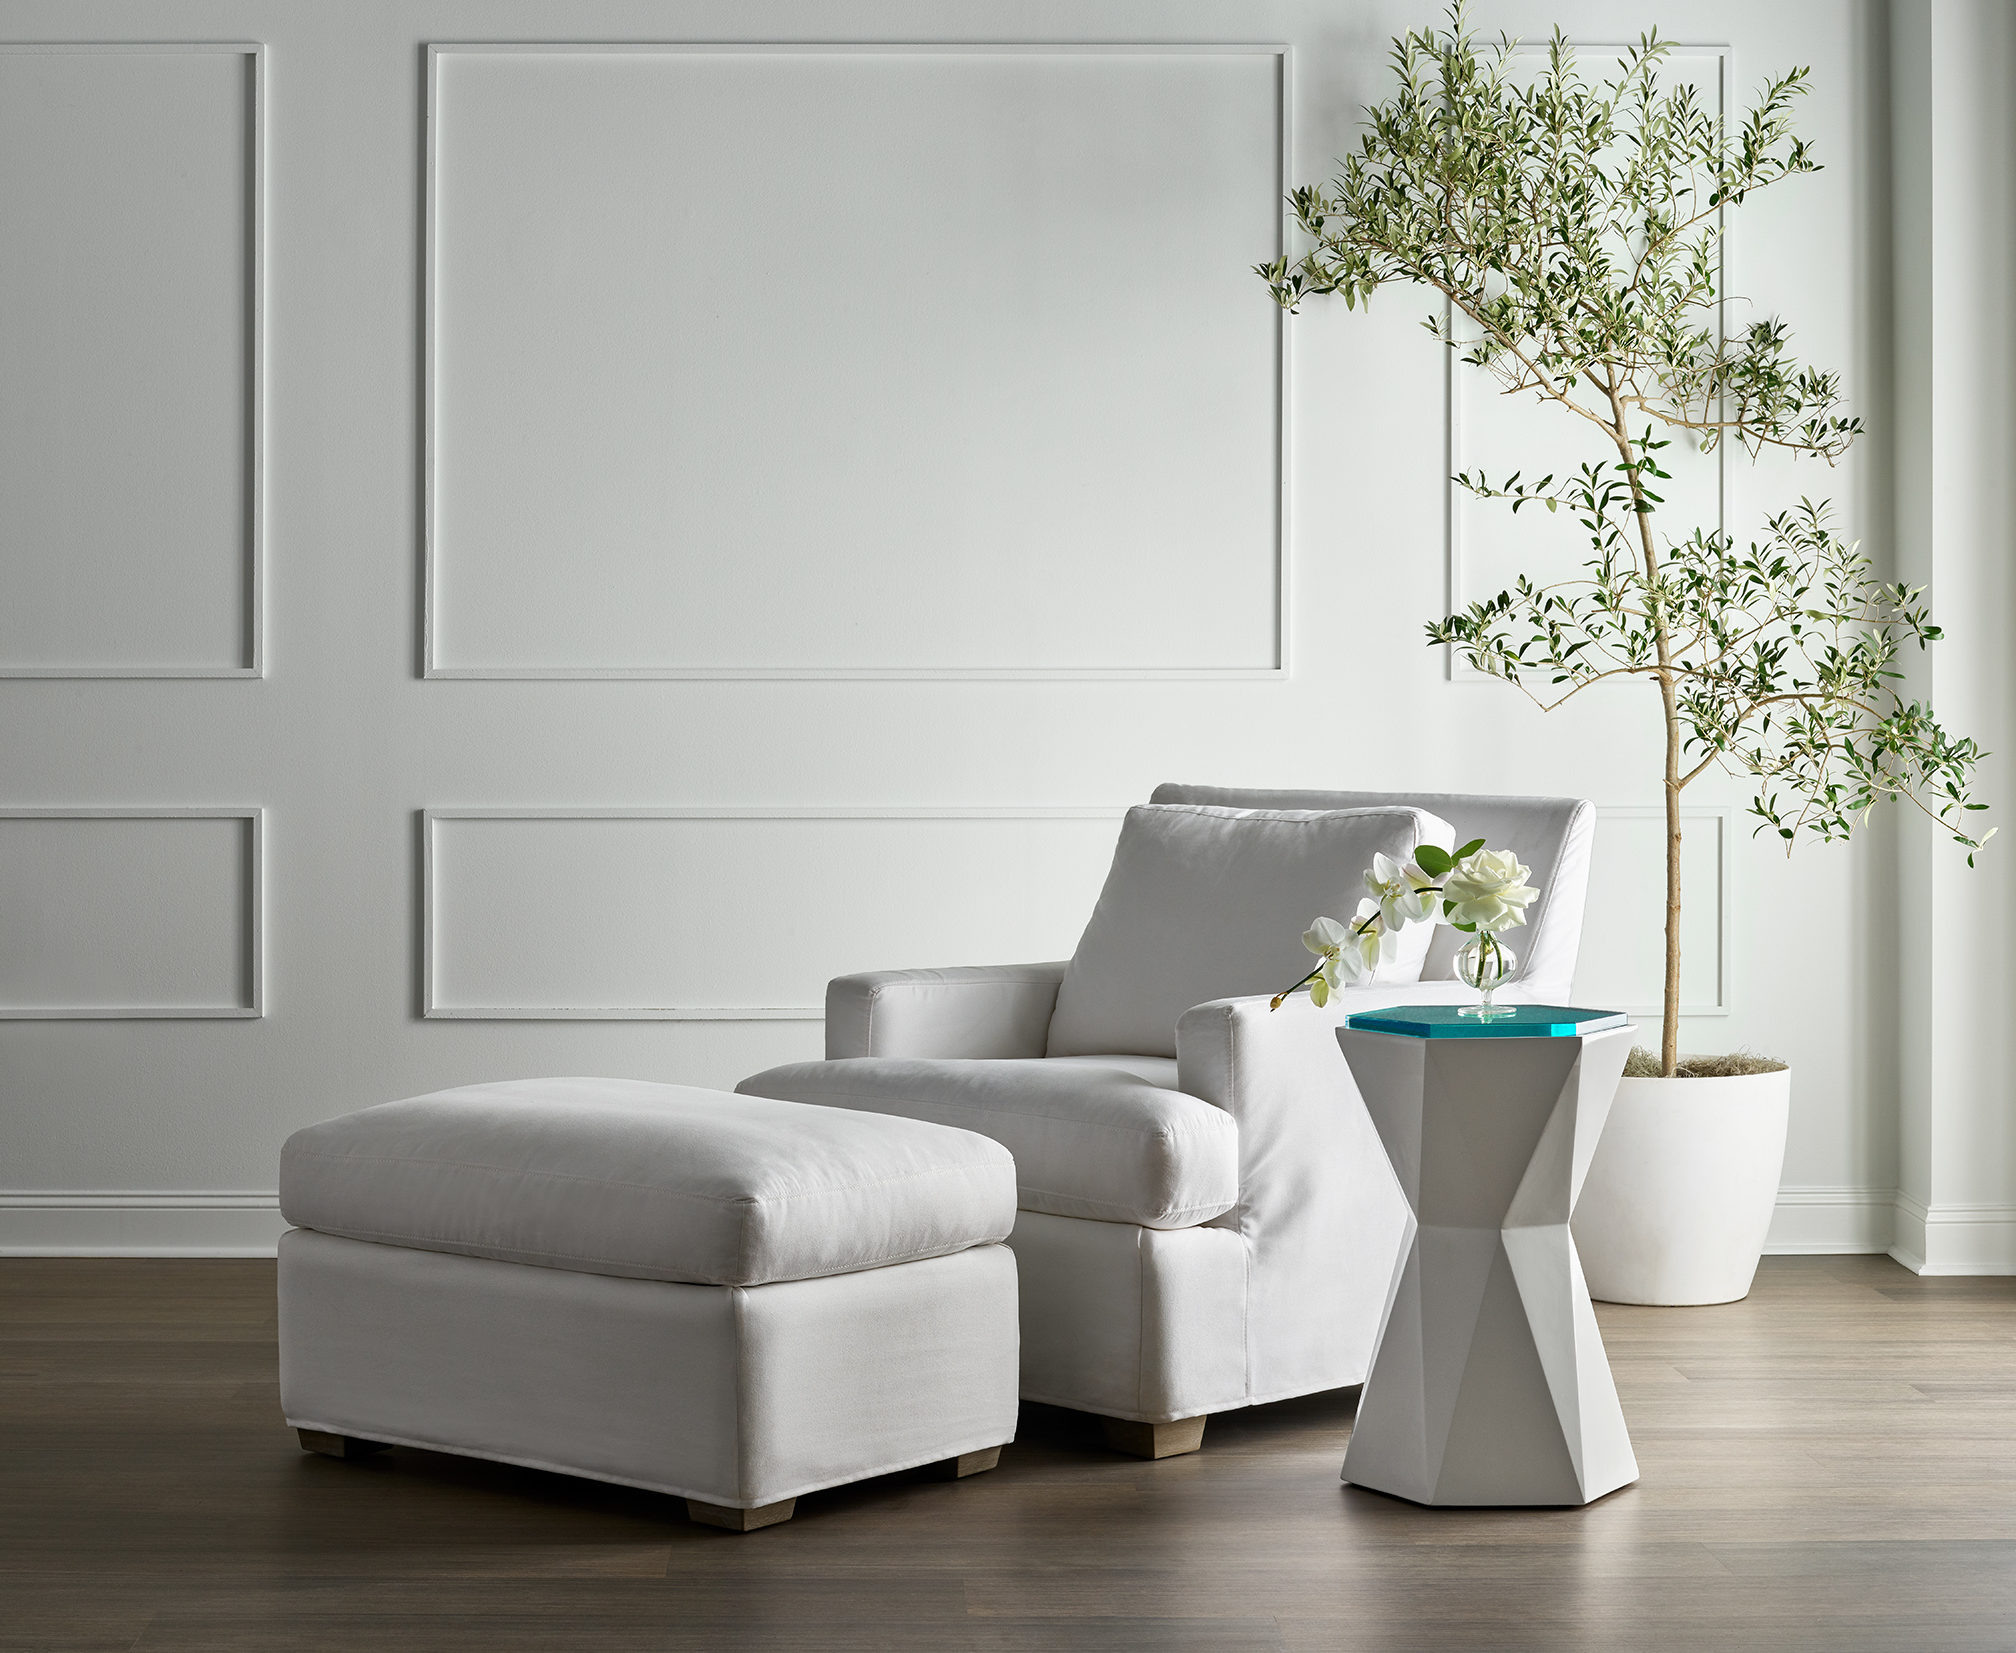 Image of a chair from the Miranda Kerr Home collection